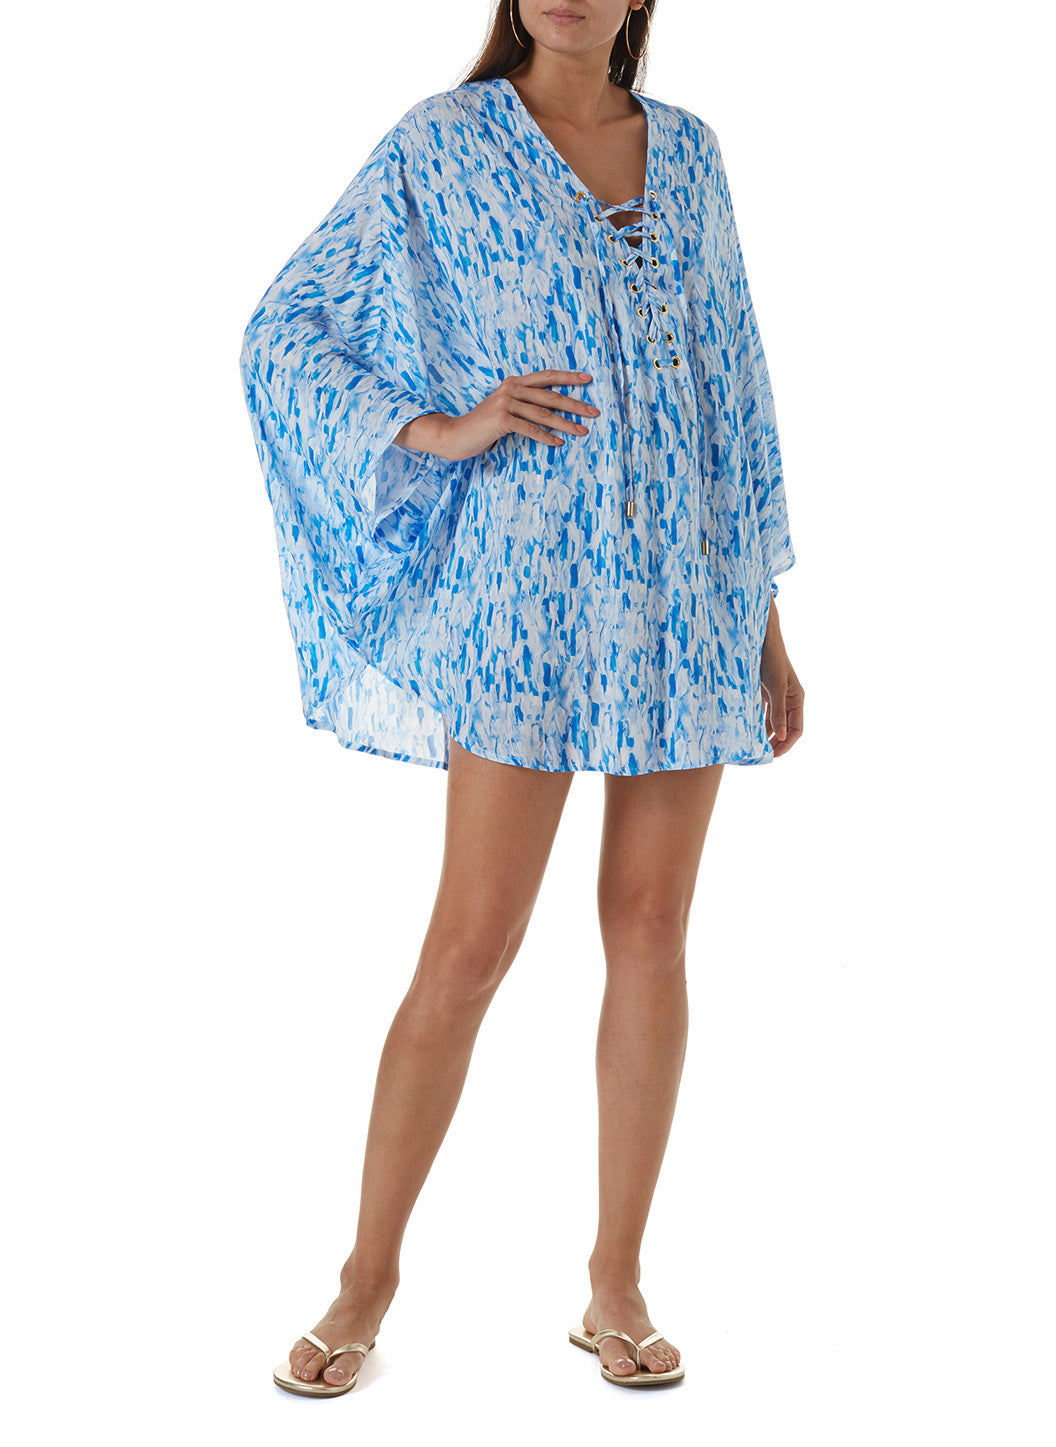 Lottie Waterfall Lace Up Short Kaftan 2020